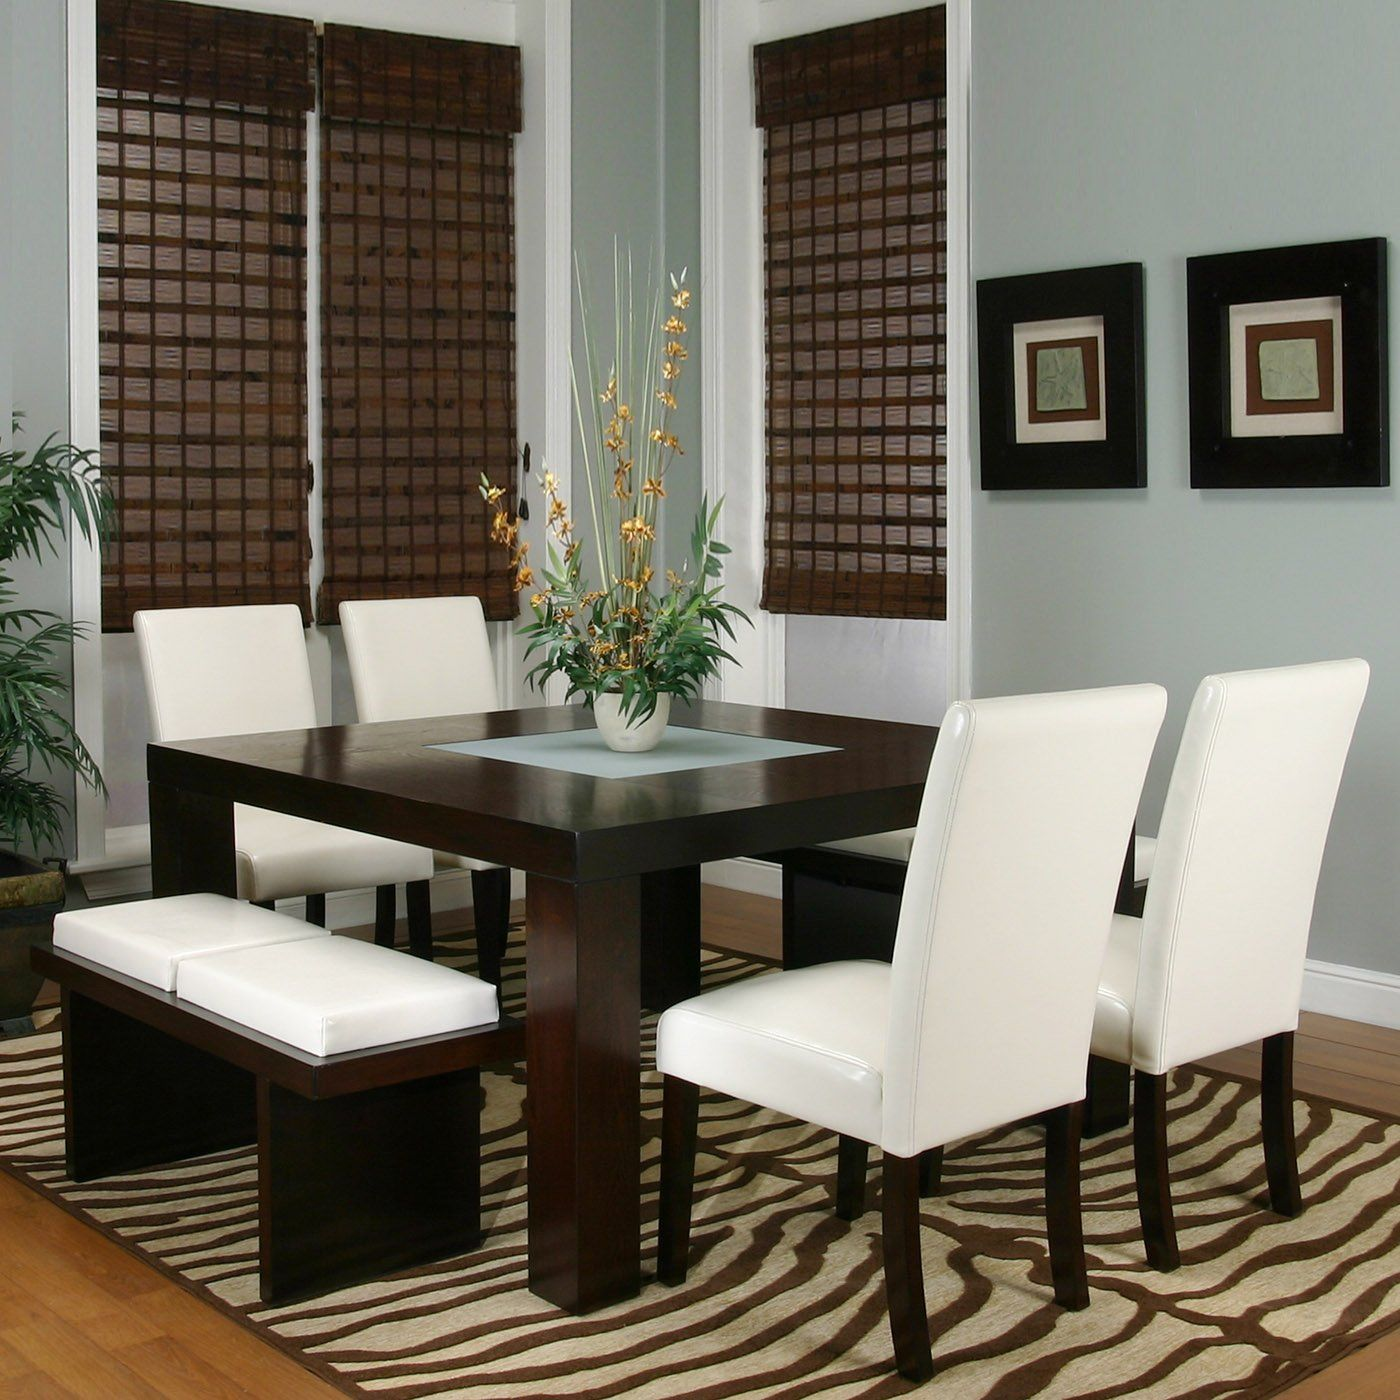 Square Dining Room Table With 8 Chairs 1000 Images About Home Decor Dining Room On Pinterest Square